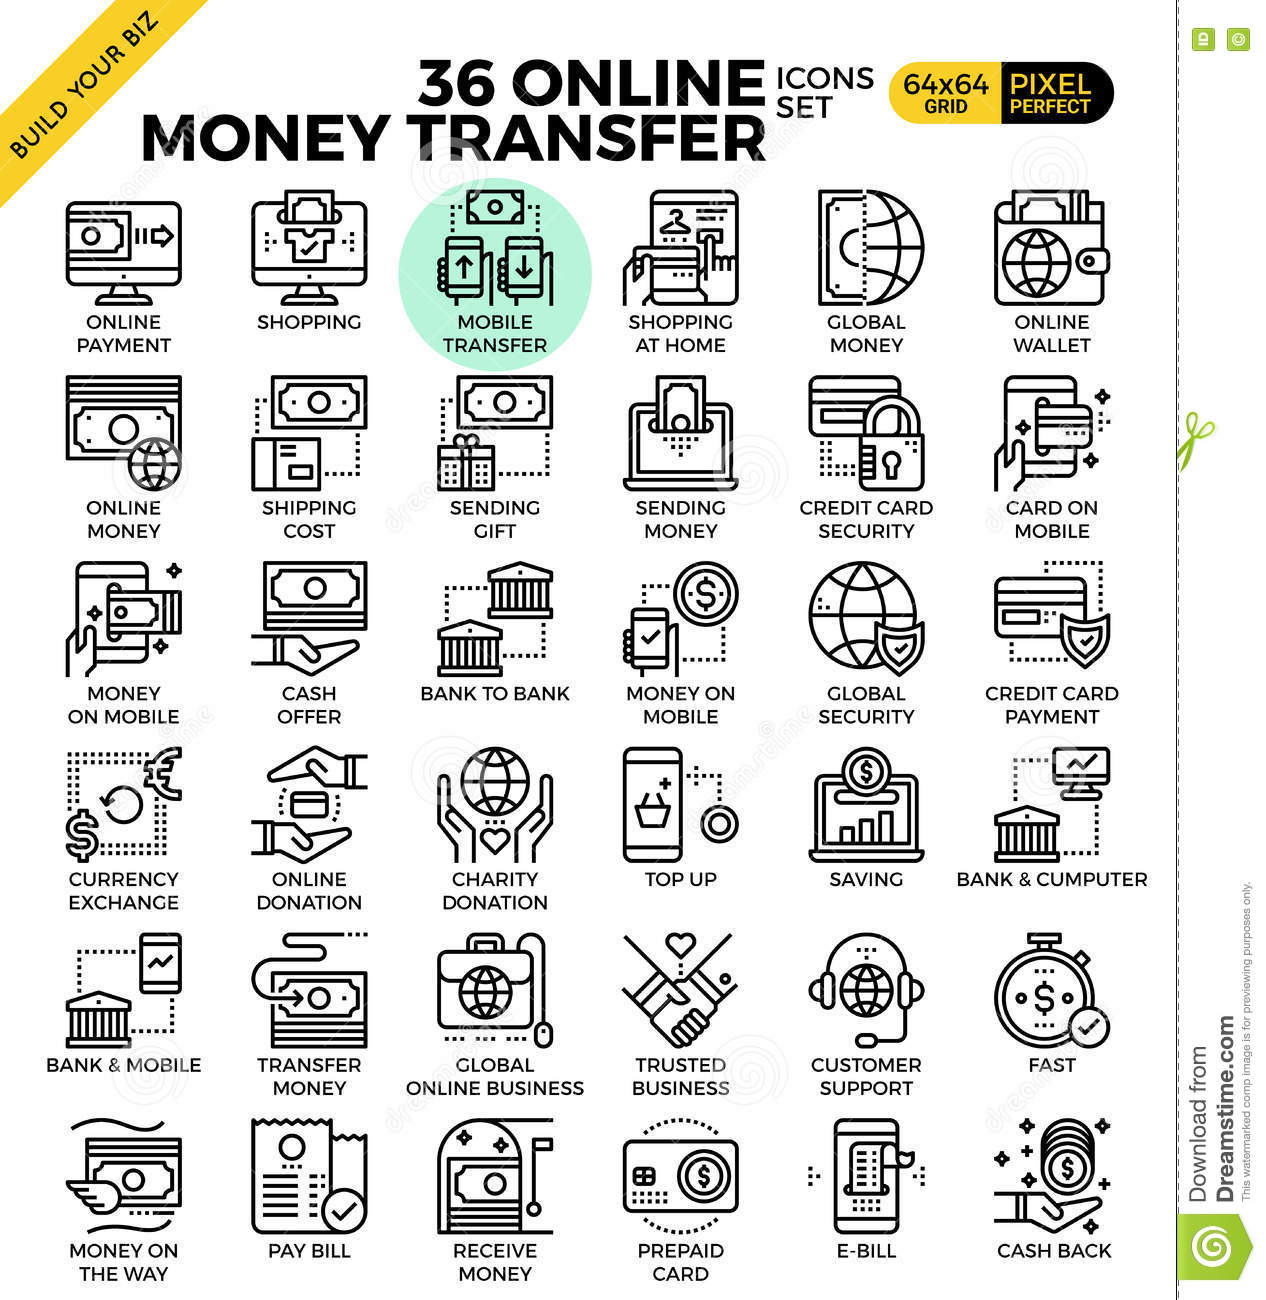 Online Money Transfer Payment Icons Stock Image - Image of coin ...